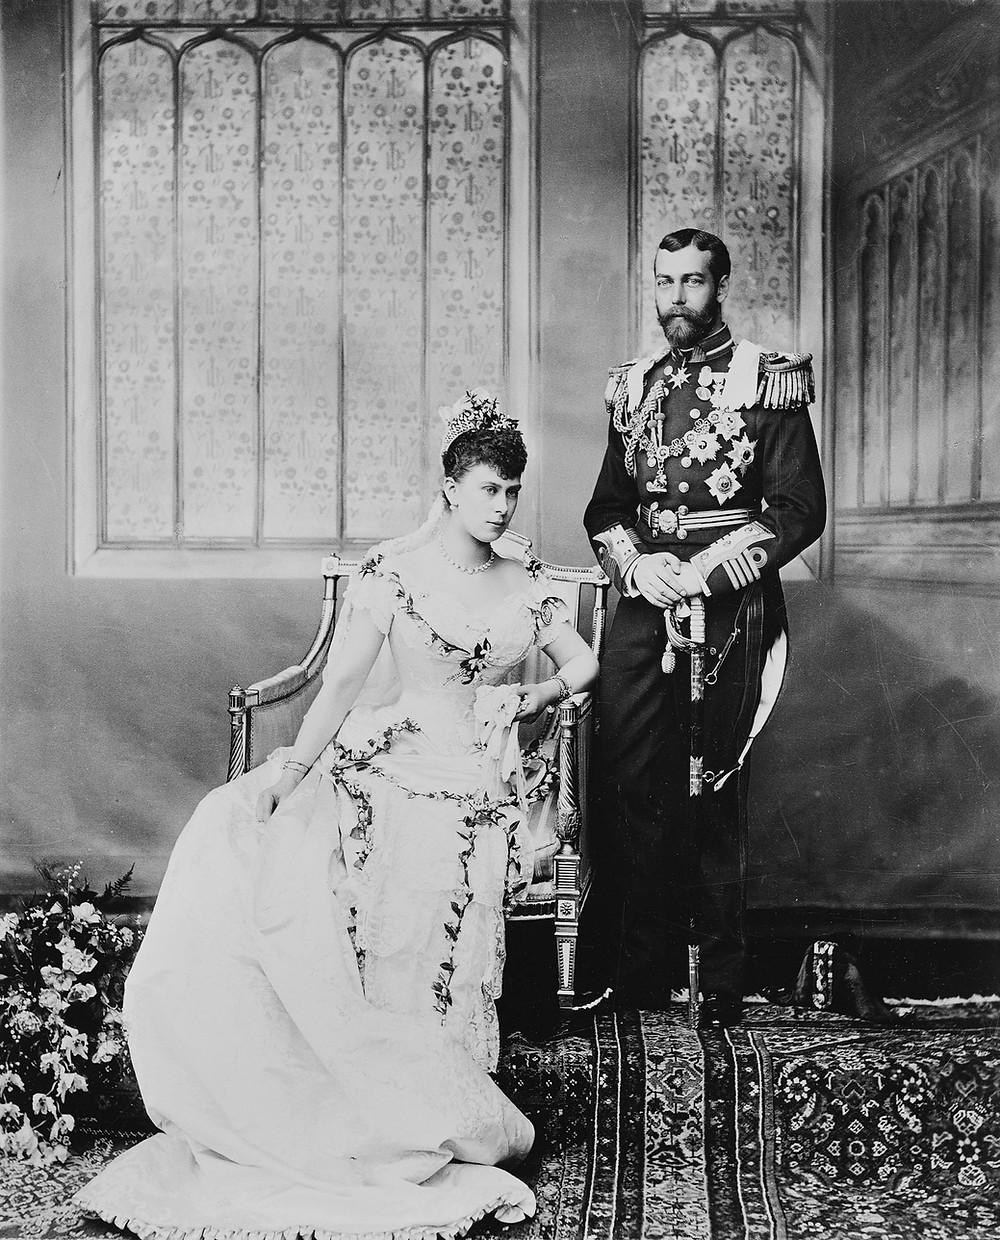 King George V & Queen Mary, when Duke and Duchess of York on their wedding day 6 Jul 1893